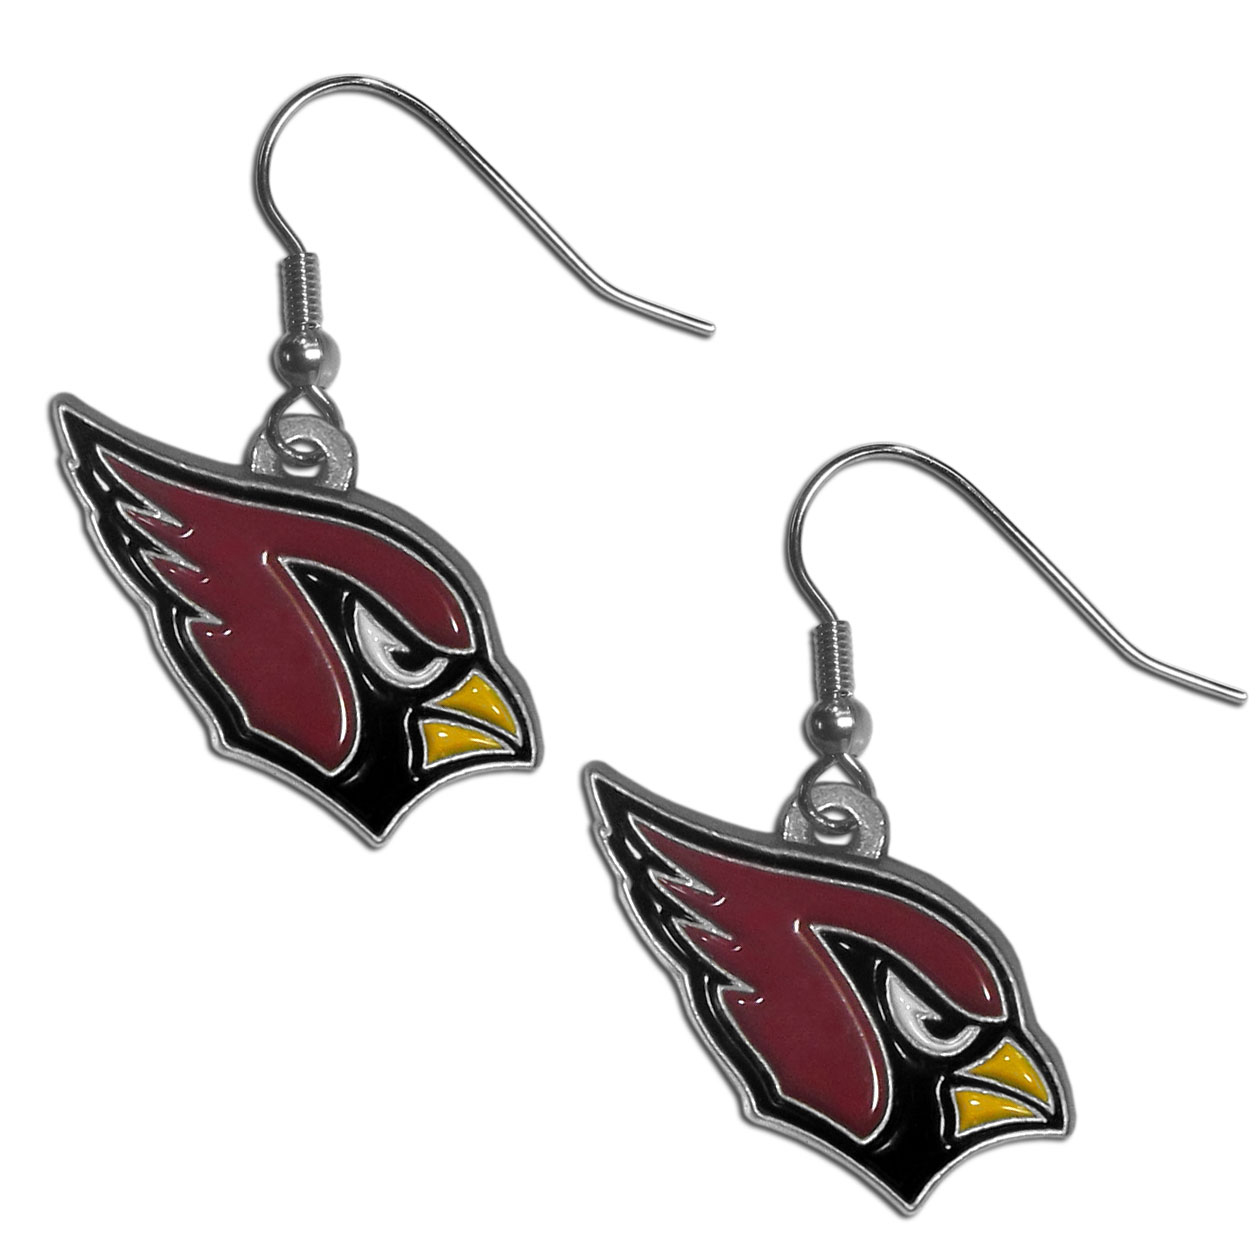 NFL Dangle Earrings - Arizona Cardinals - Enameled zinc Arizona Cardinals logo earrings with the NFL Arizona Cardinals Logo. A great way to show off your Arizona Cardinals spirit! Check out our extensive line of Arizona Cardinals NFL jewelry! Officially licensed NFL product Licensee: Siskiyou Buckle Thank you for visiting CrazedOutSports.com